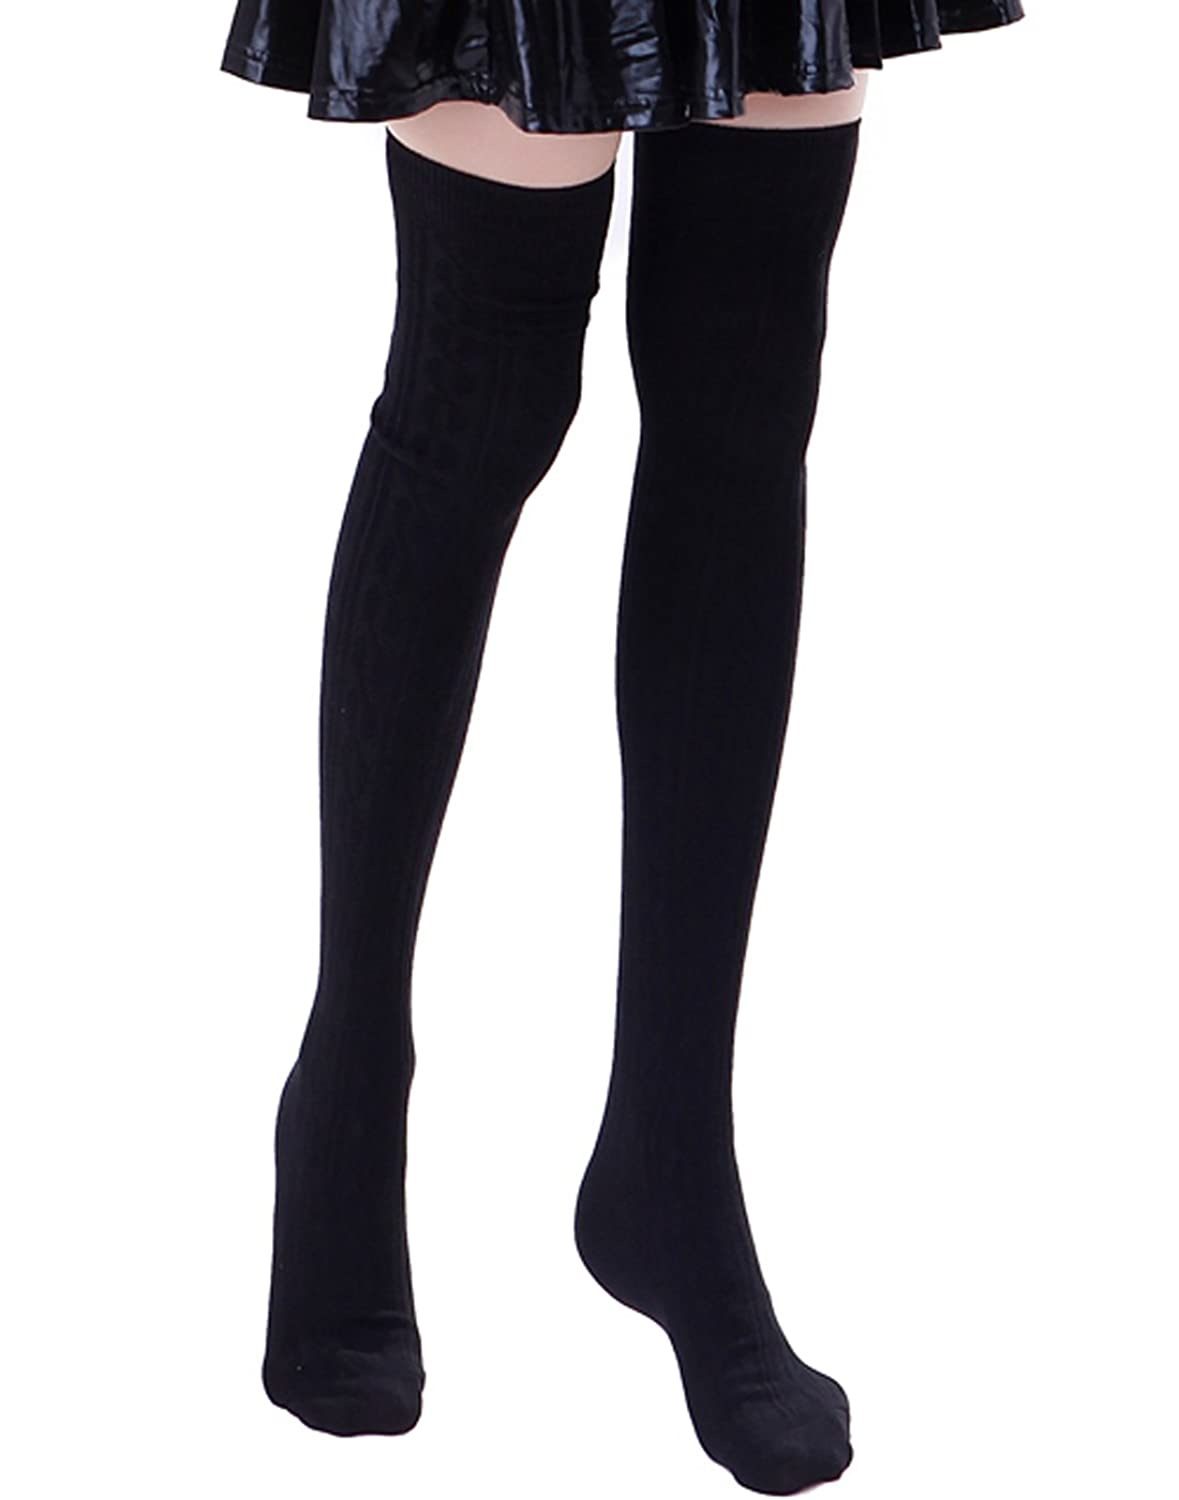 HDE Womens Opaque Solid Color Cable Knit Over the Knee Thigh High Stocking Socks 2018 winter thigh high boots women faux suede leather high heels over the knee botas mujer plus size shoes woman 34 43